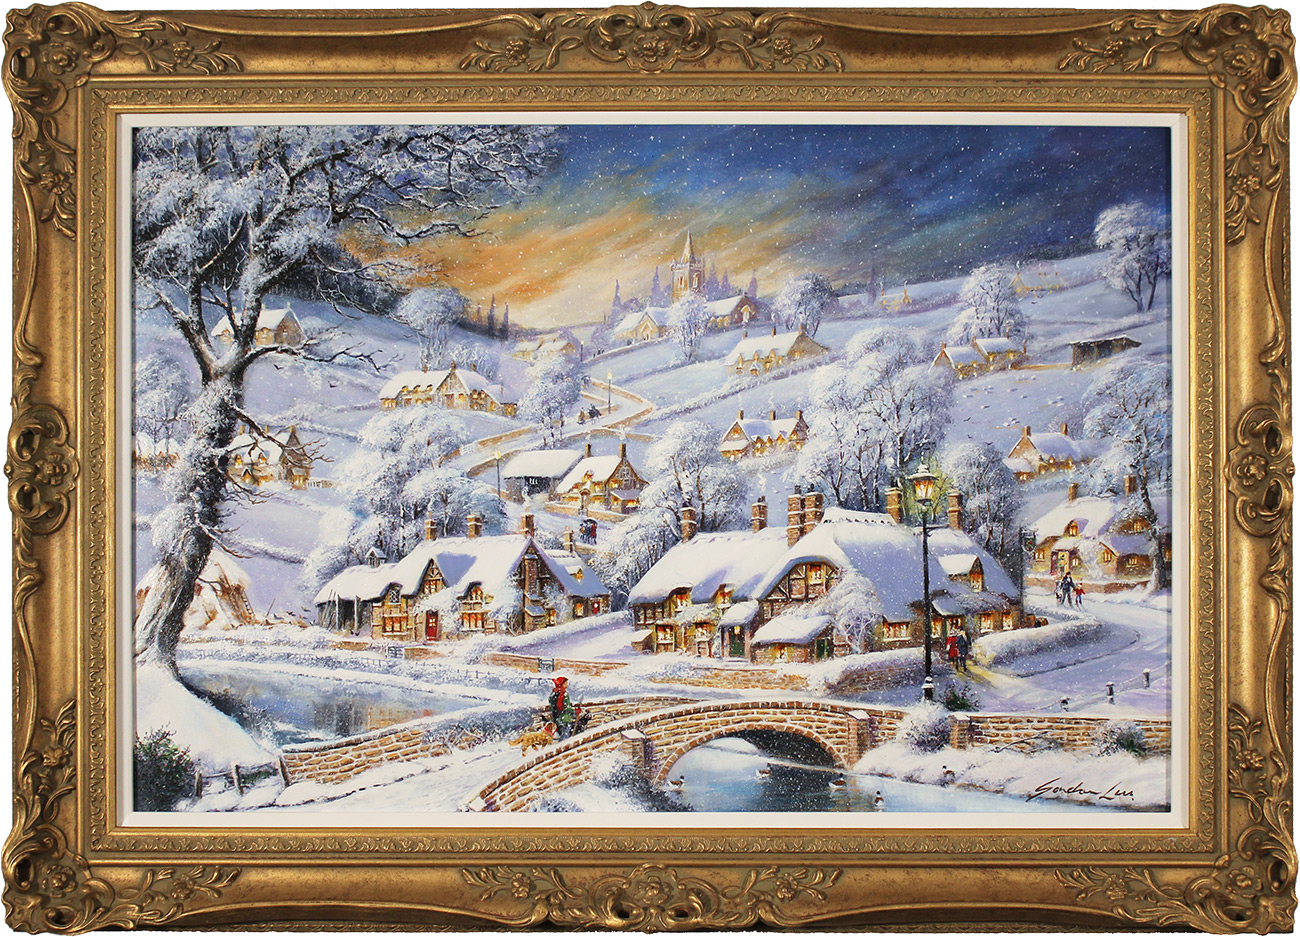 Gordon Lees, Original oil painting on panel, Snowfall and Starry Skies, click to enlarge